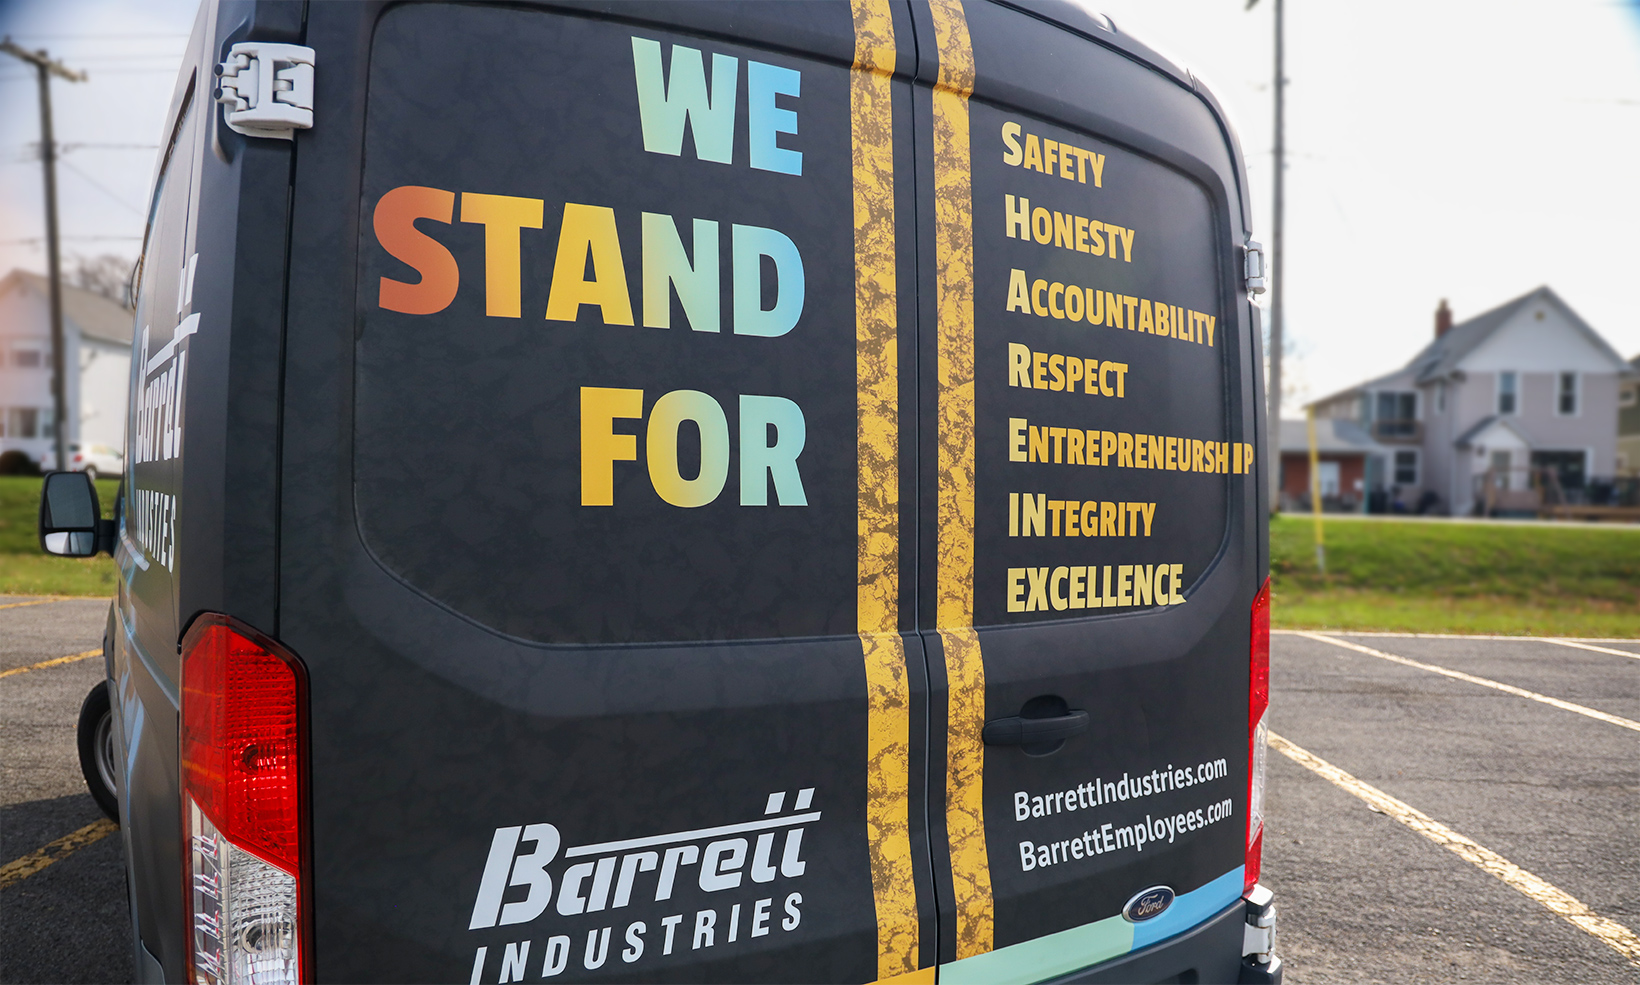 This custom vehicle wrap designed for Barrett Industries displays the company values to drivers behind the van